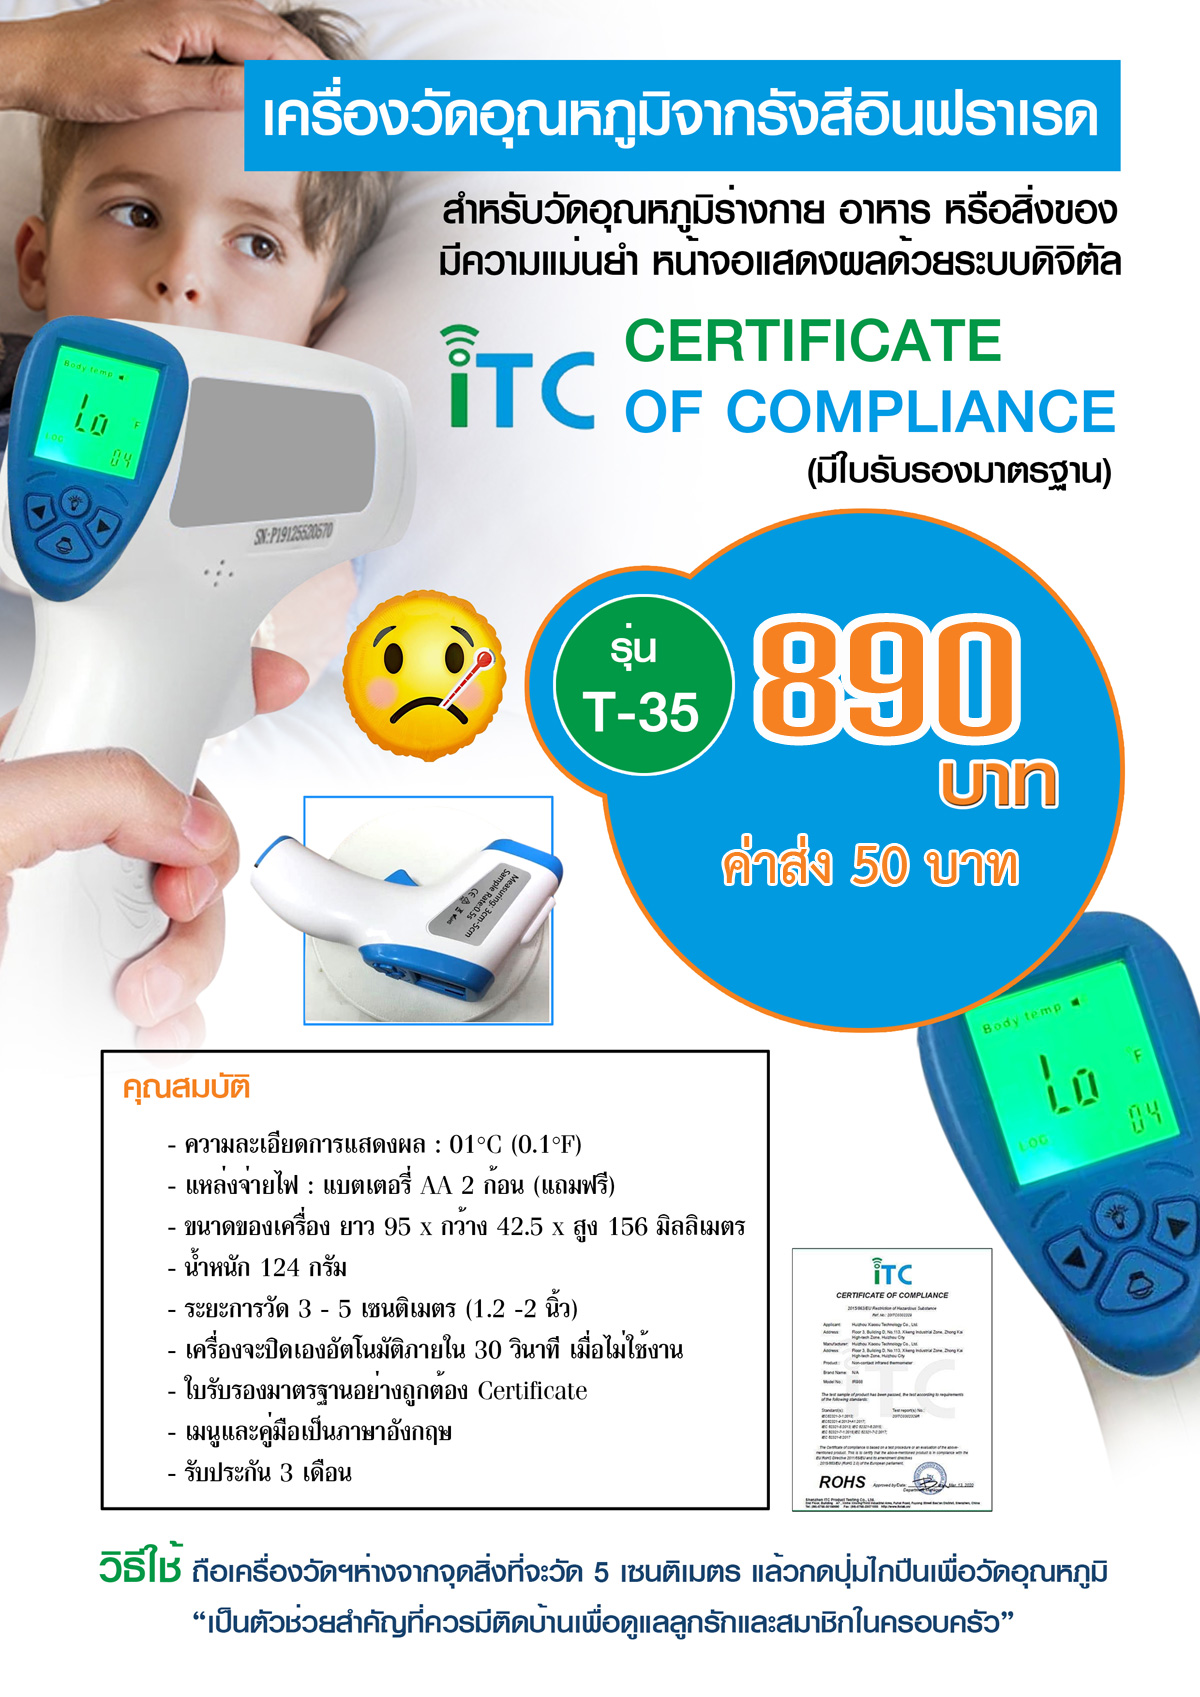 890baht thermometer infrared